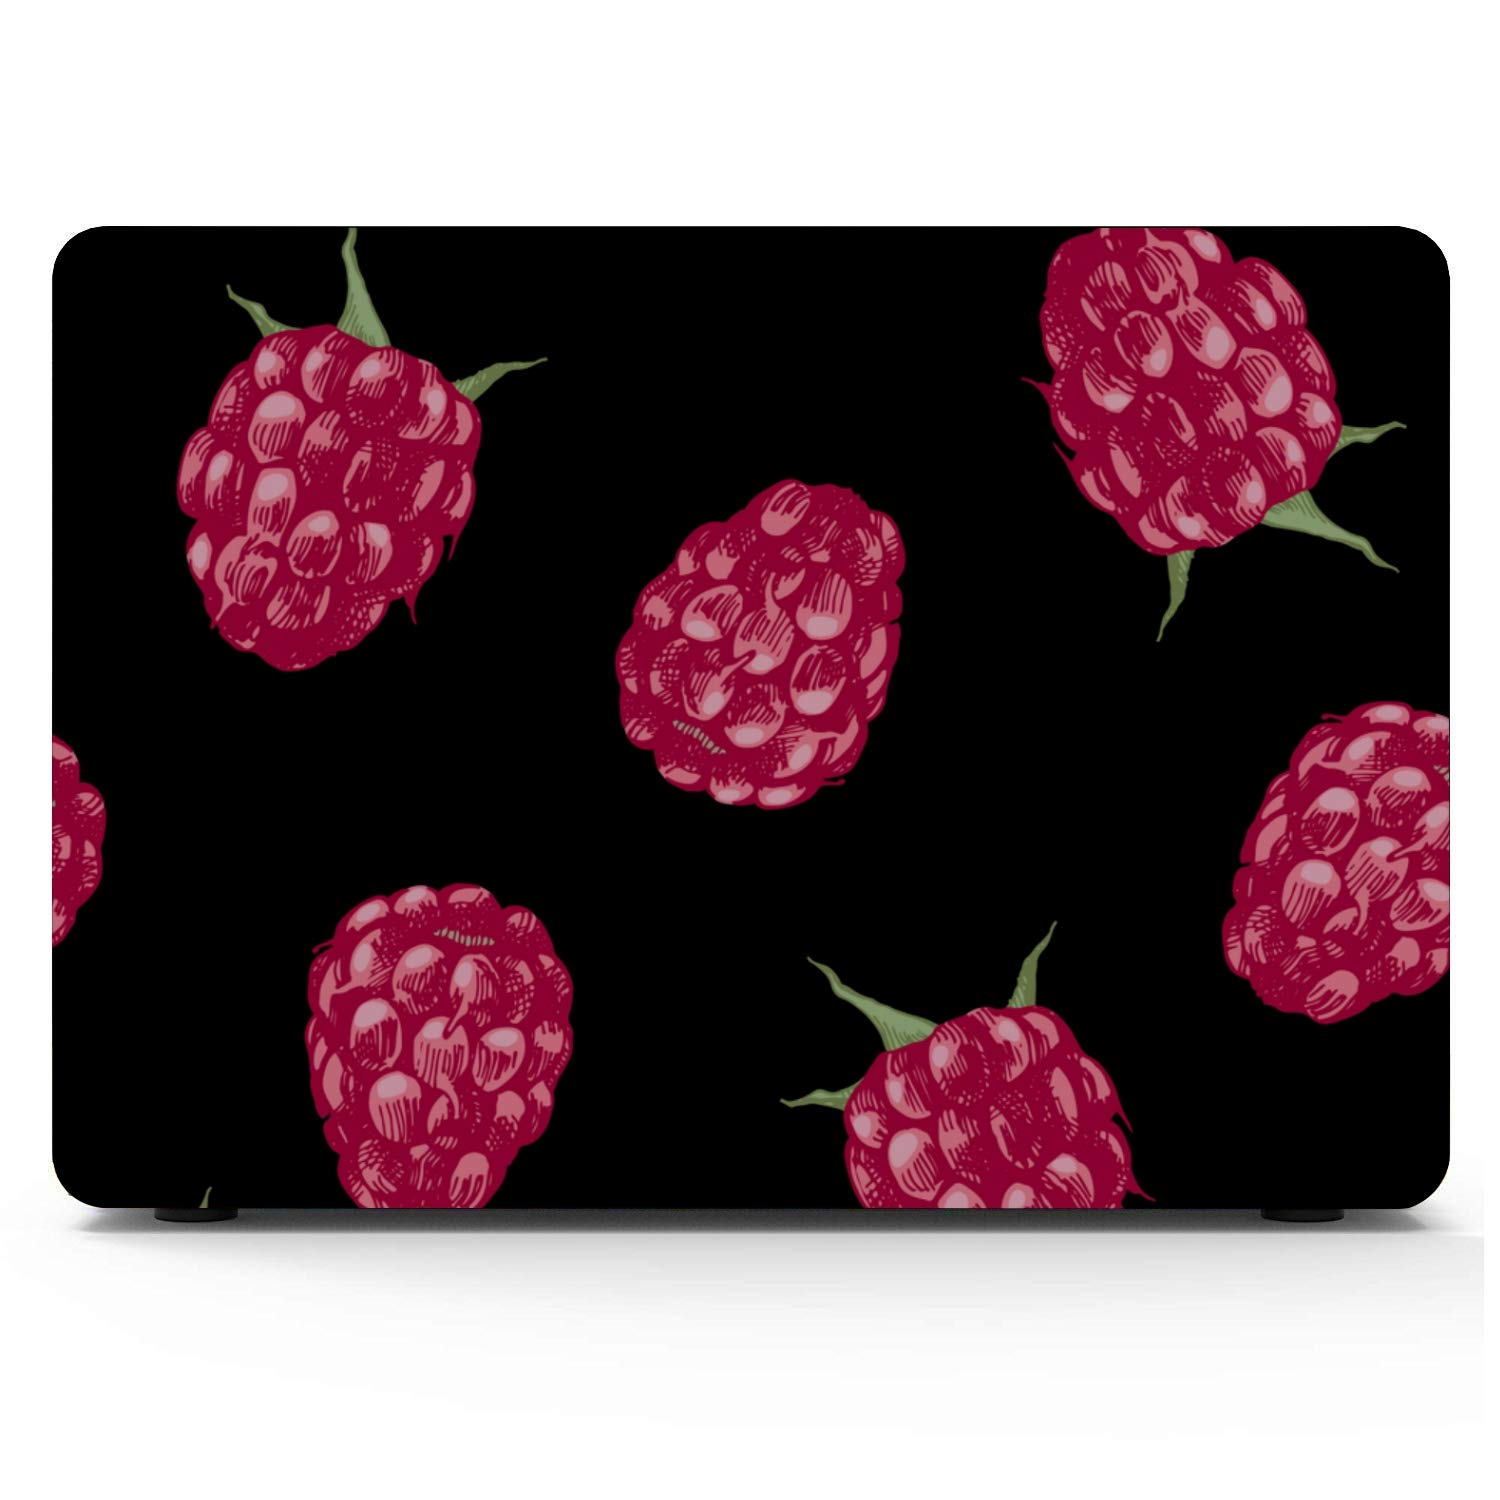 Mac Air Laptop Case Summer Sweet Sour Create Berry Fruit Plastic Hard Shell Compatible Mac Air 11 Pro 13 15 A1534 MacBook Case Protection for MacBook 2016-2019 Version